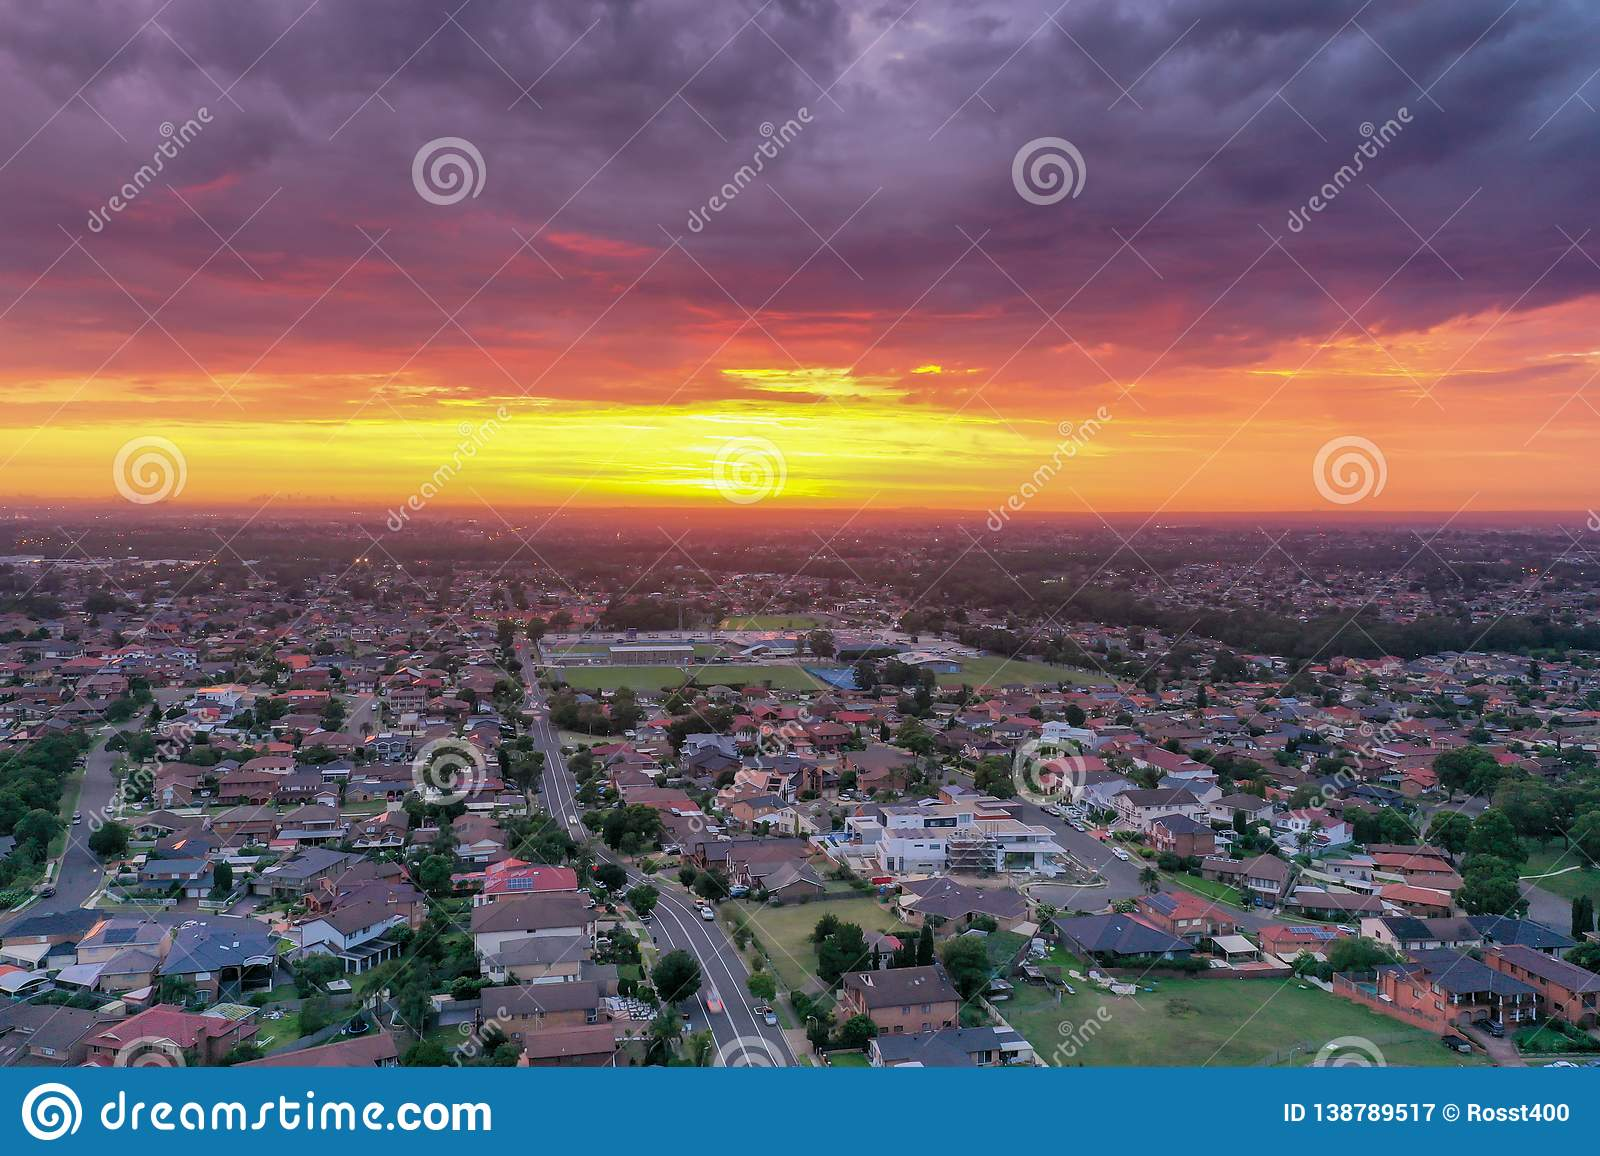 Sunrise above a residential suburbs with streets, homes parks in the background. Dramatic lighting and warm colours